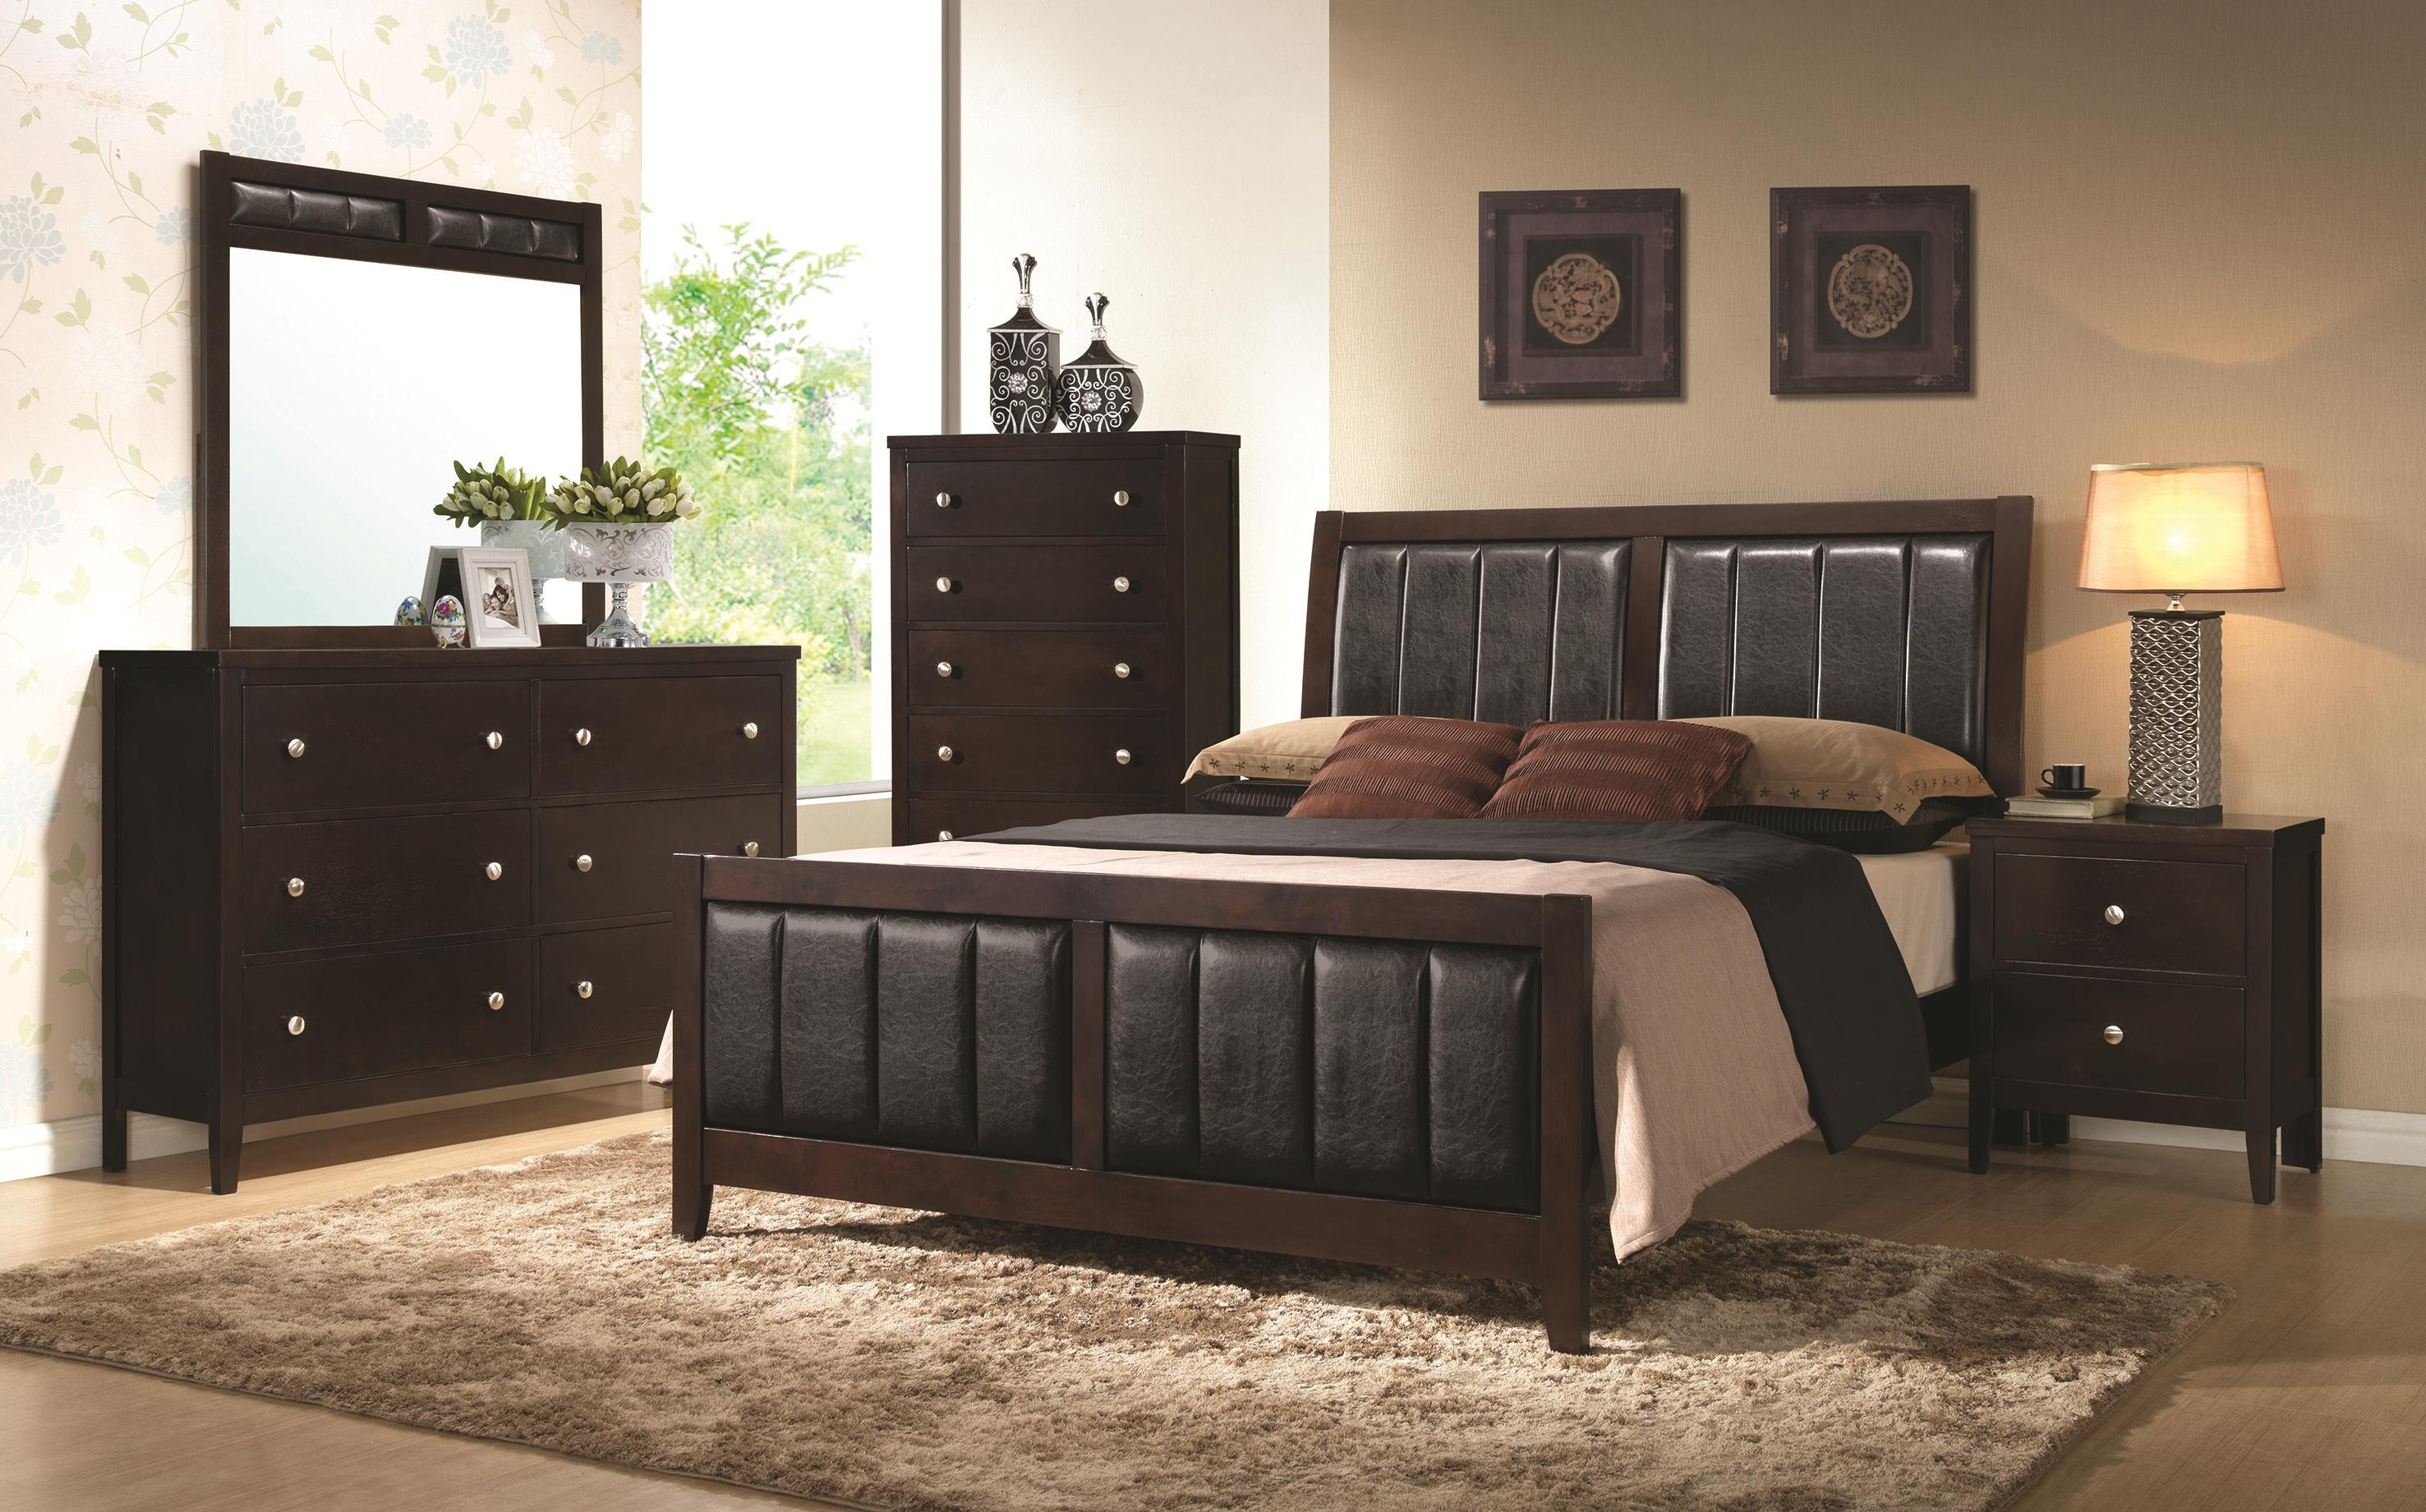 Coaster Carlton King Bedroom Group - Item Number: 20209 K Bedroom Group